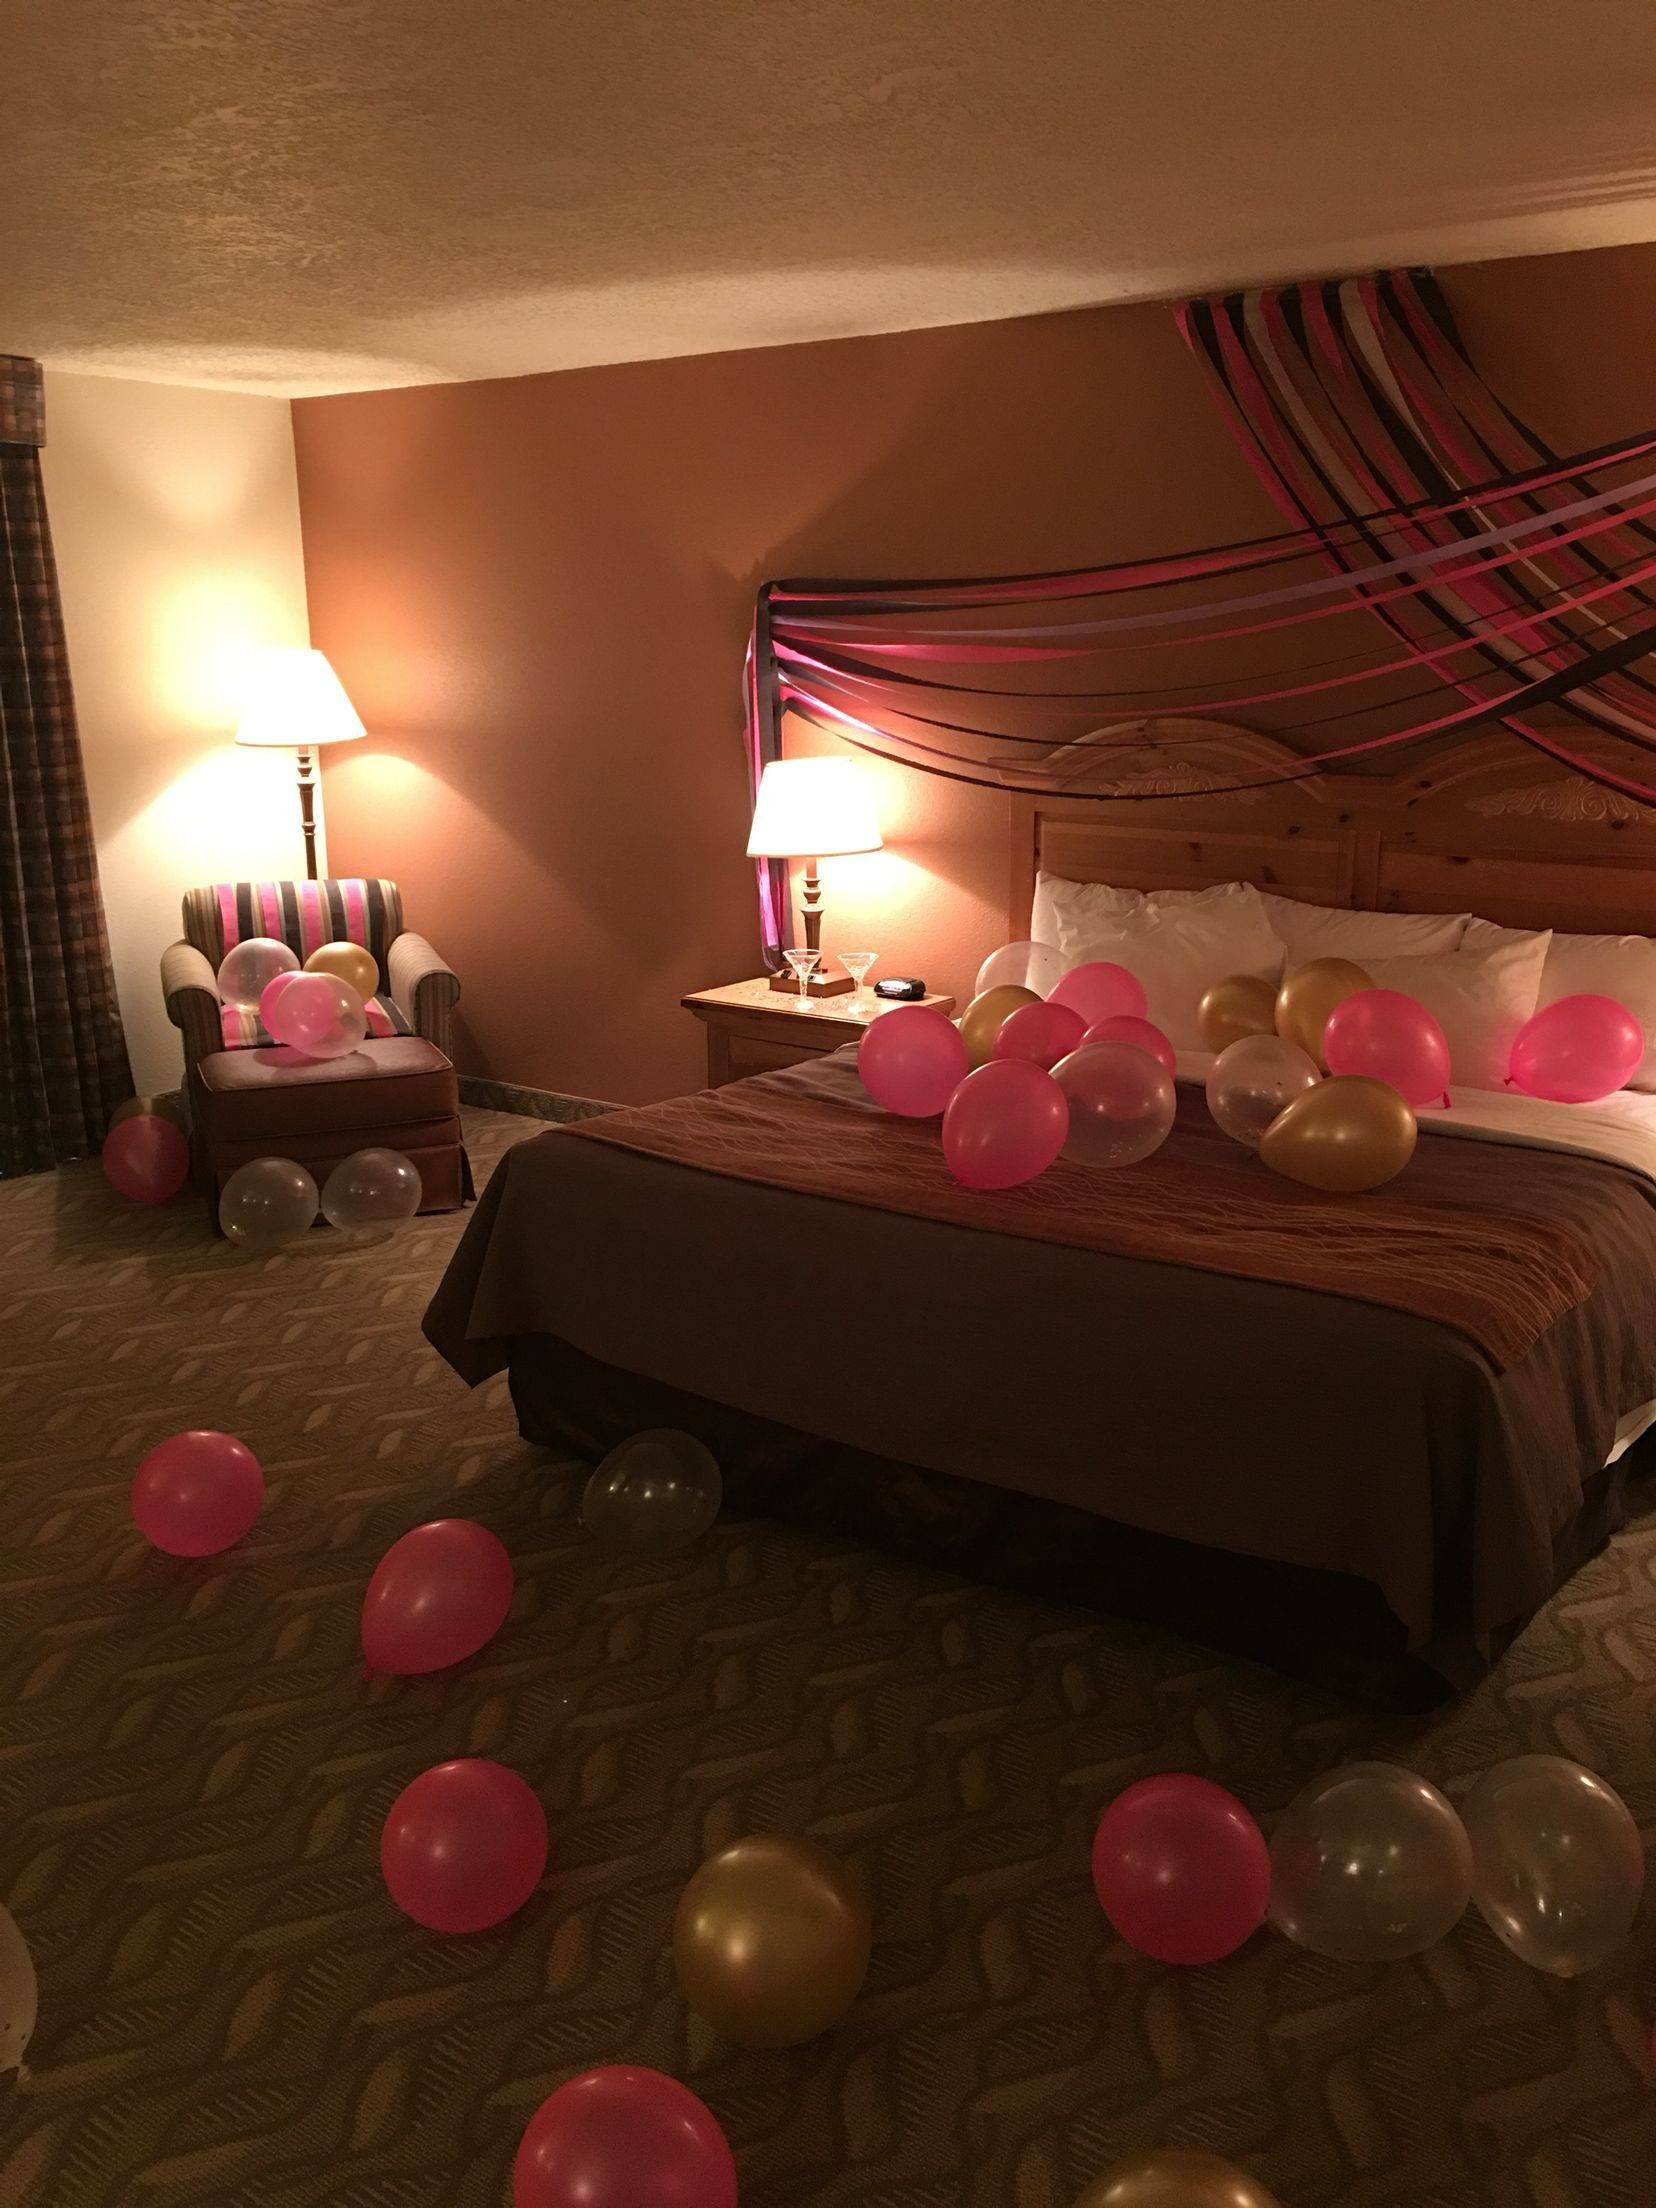 Hotel Room Decoration: Simple Room Decoration Ideas For Anniversary #architecture